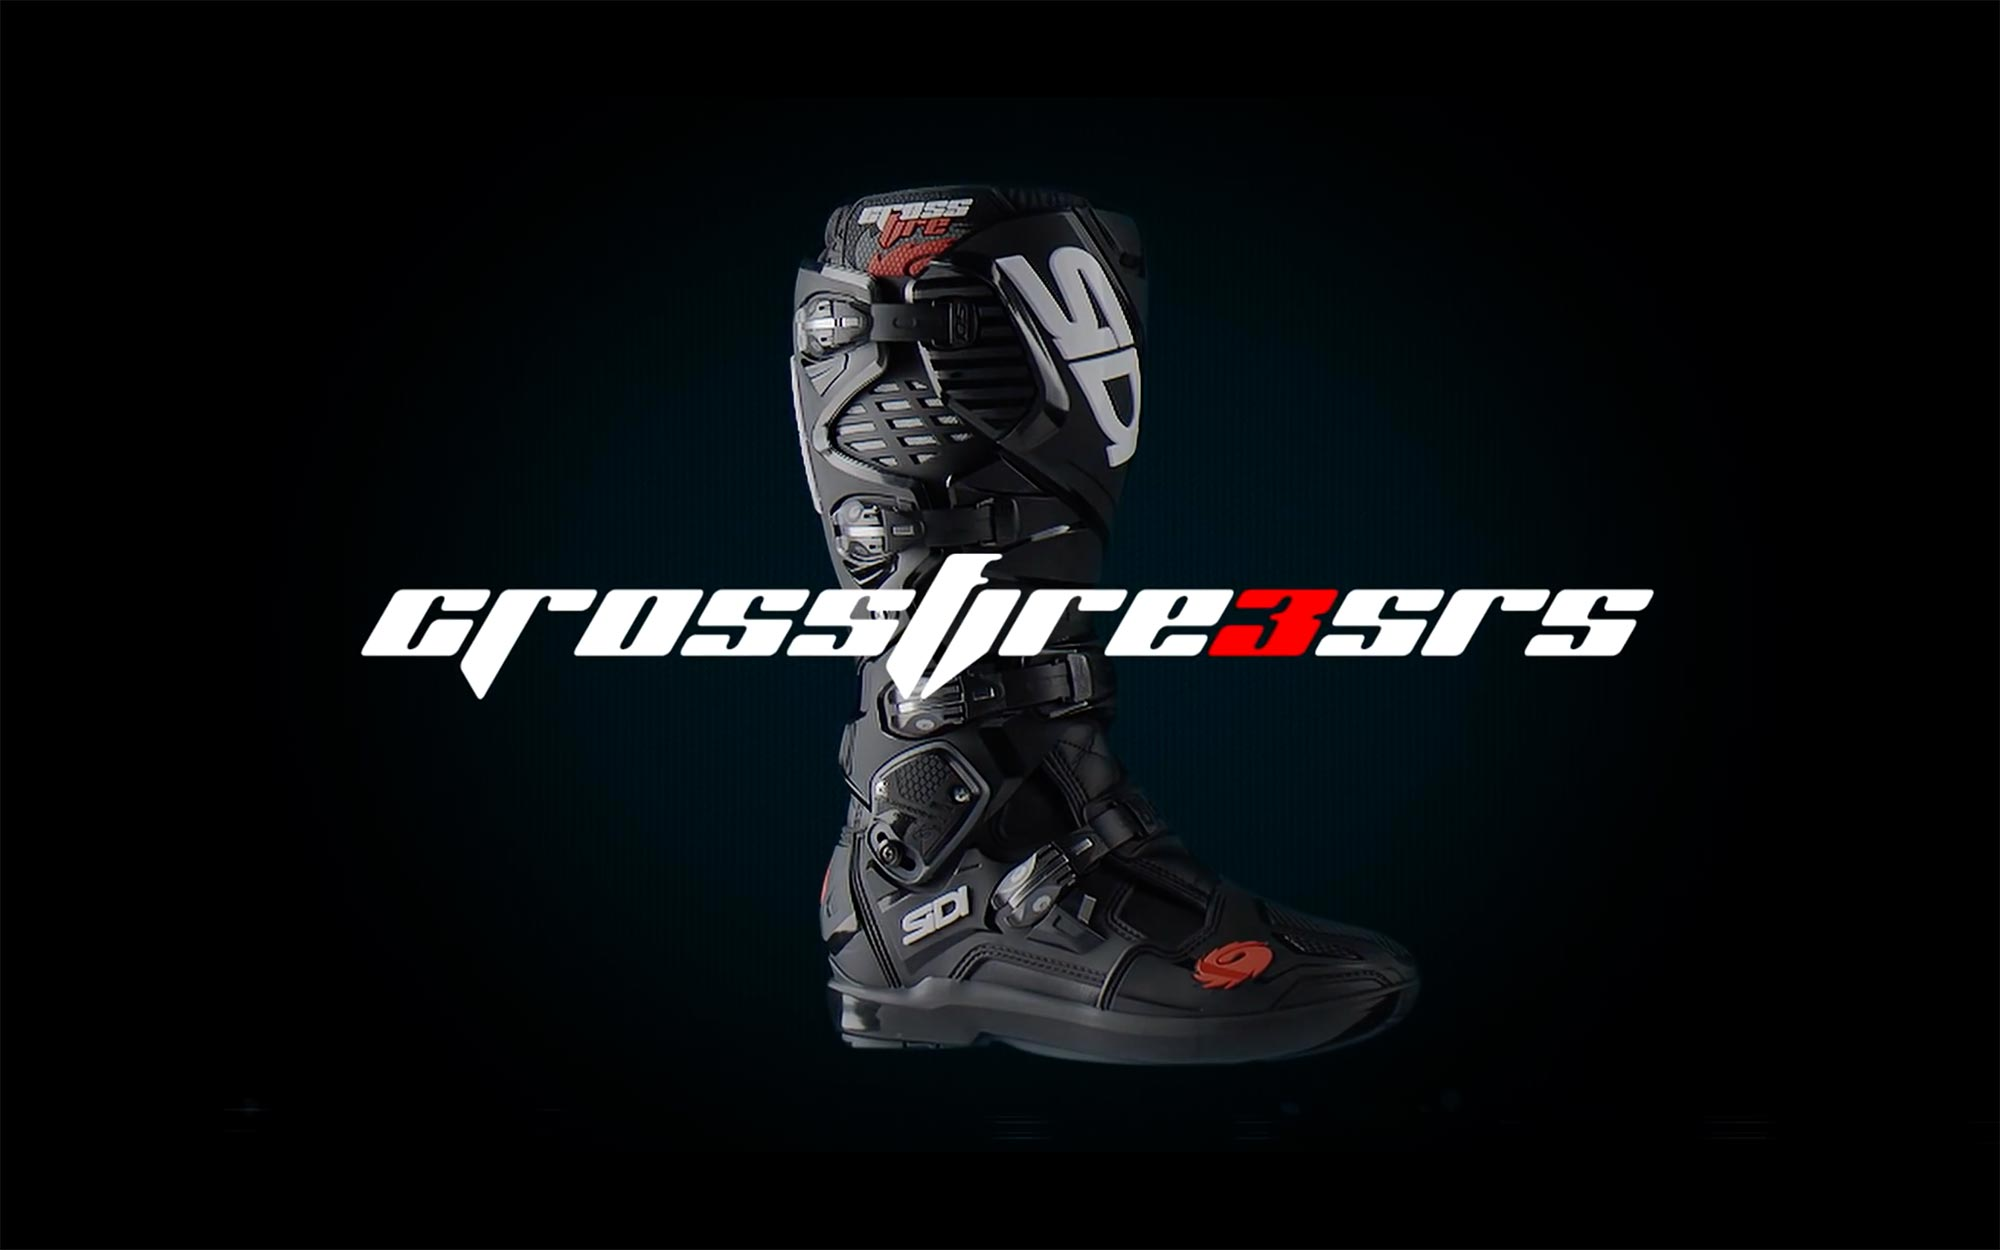 Sidi Crossfire 3 Srs Boots Set To Debut